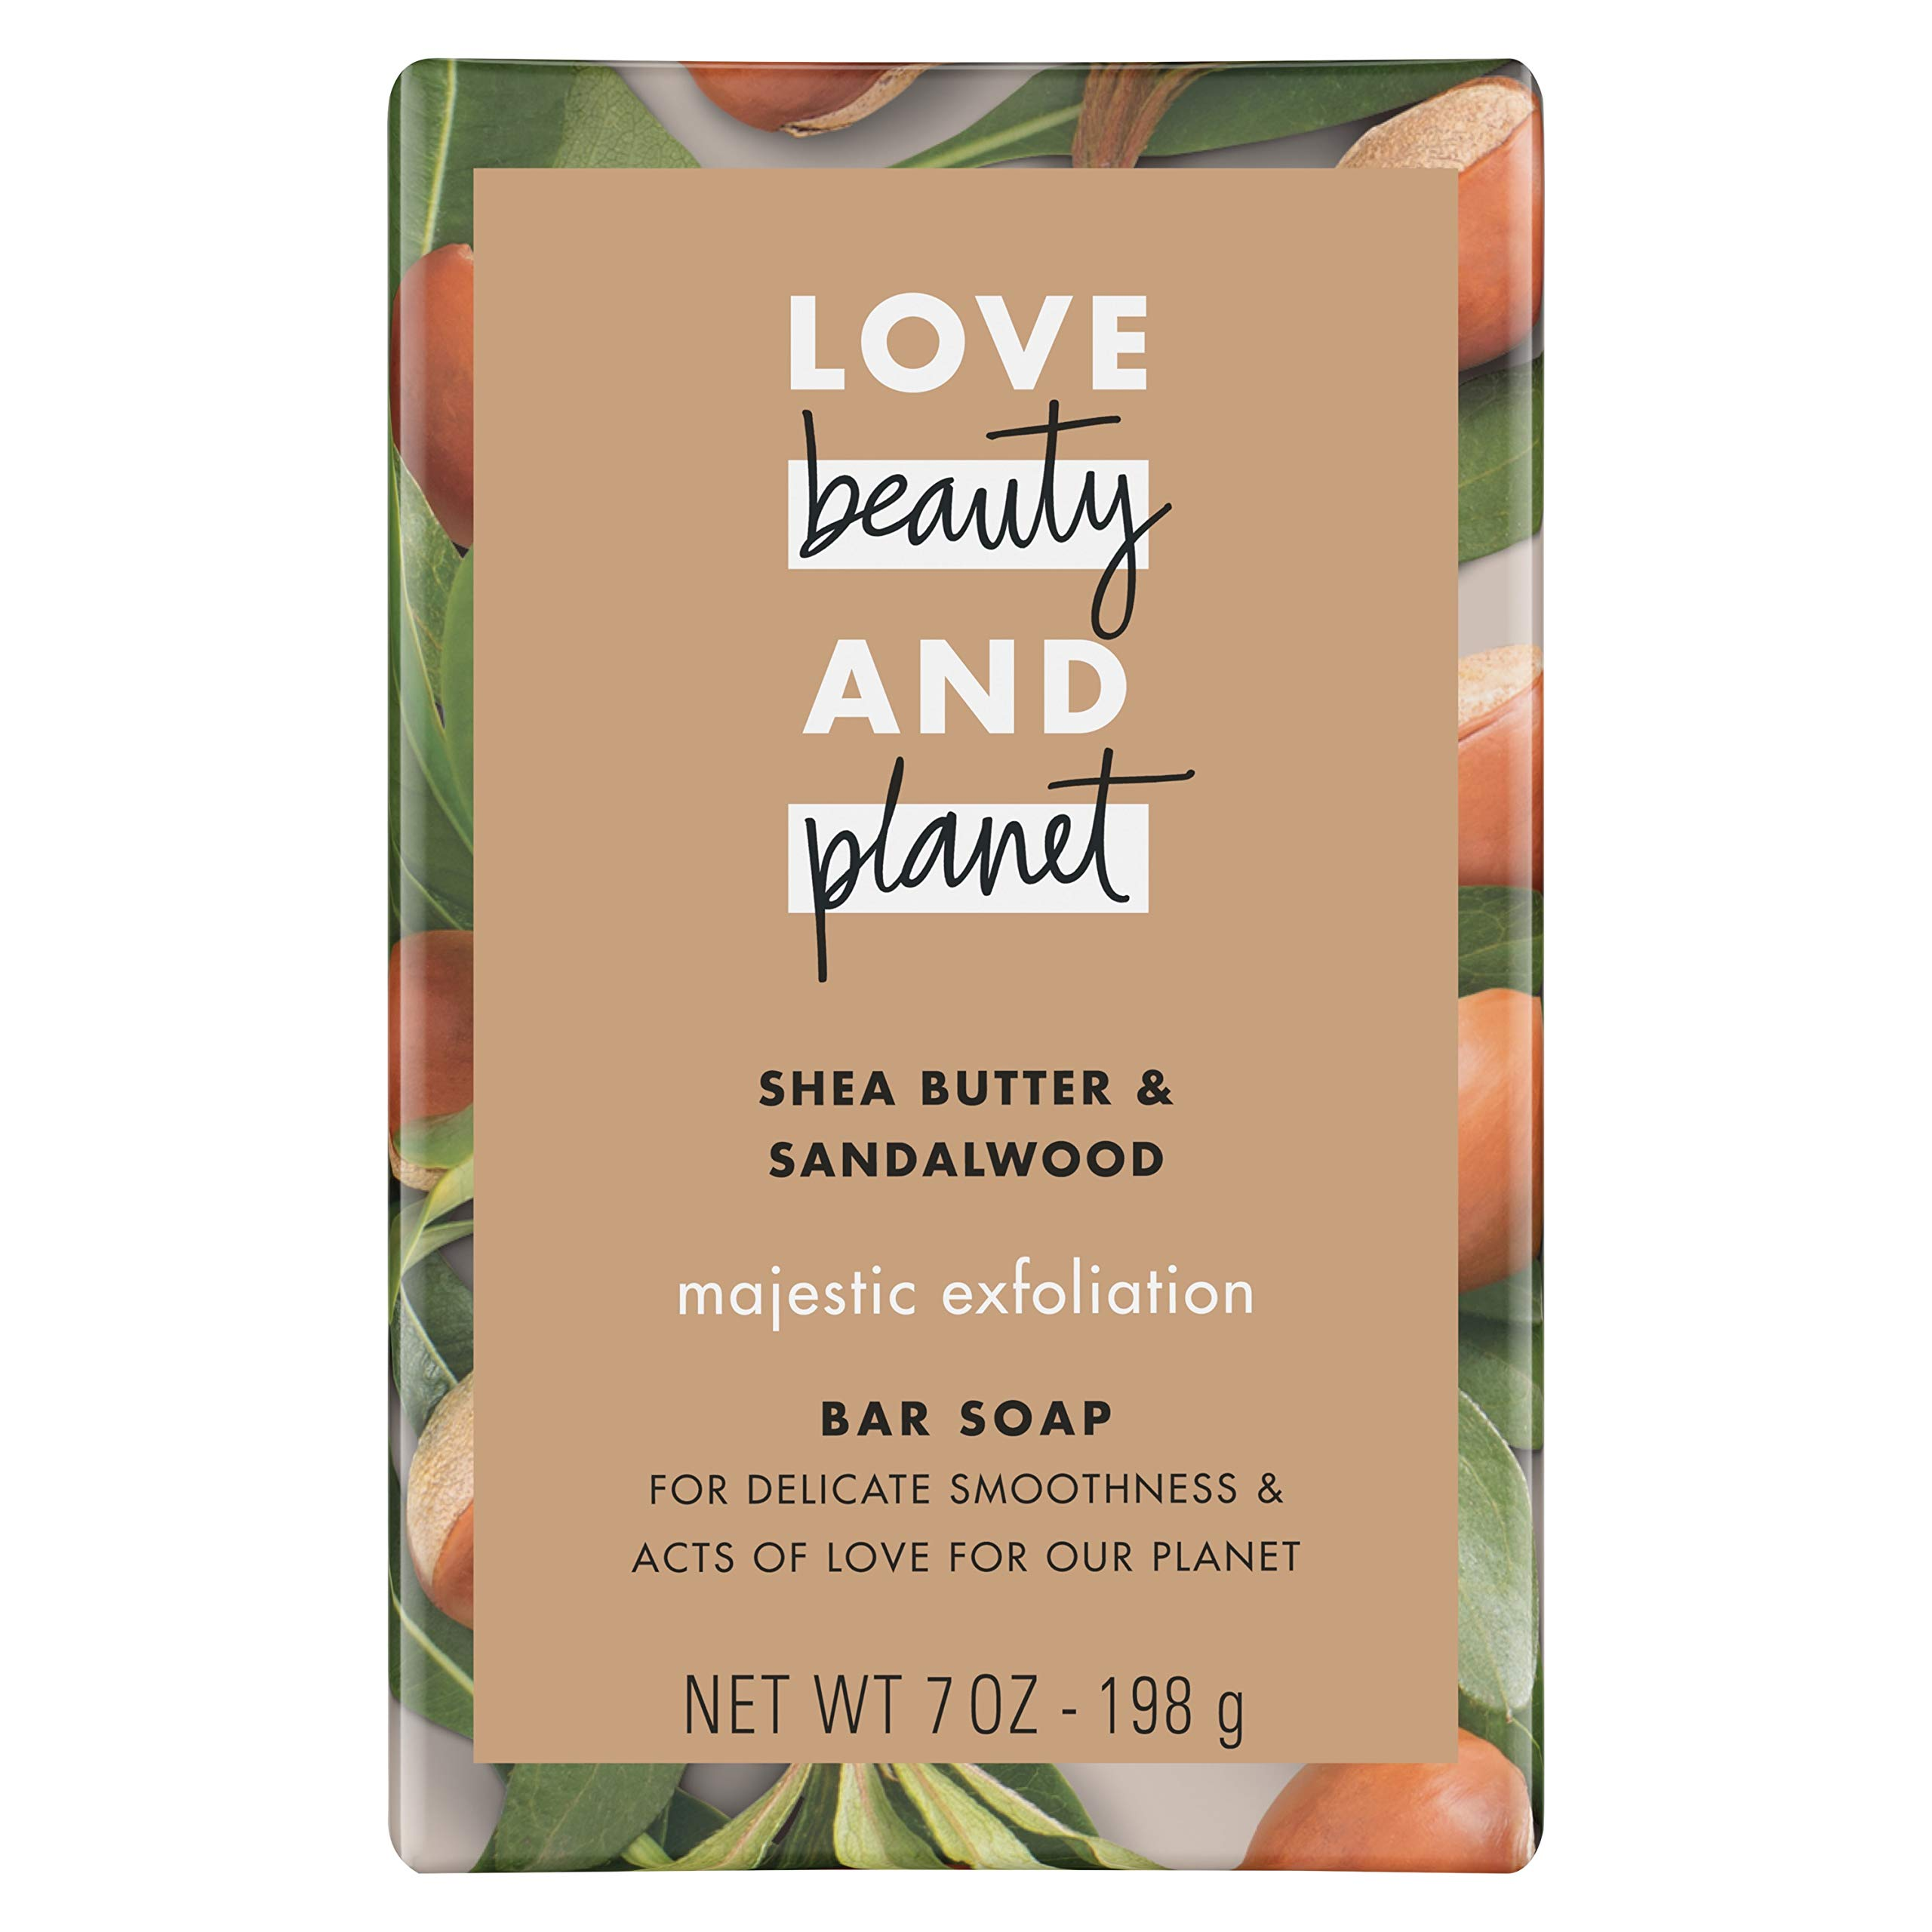 Love Beauty And Planet Majestic Exfoliation Bar Soap Shea Butter & Sandalwood, 7 oz, Pack of 3